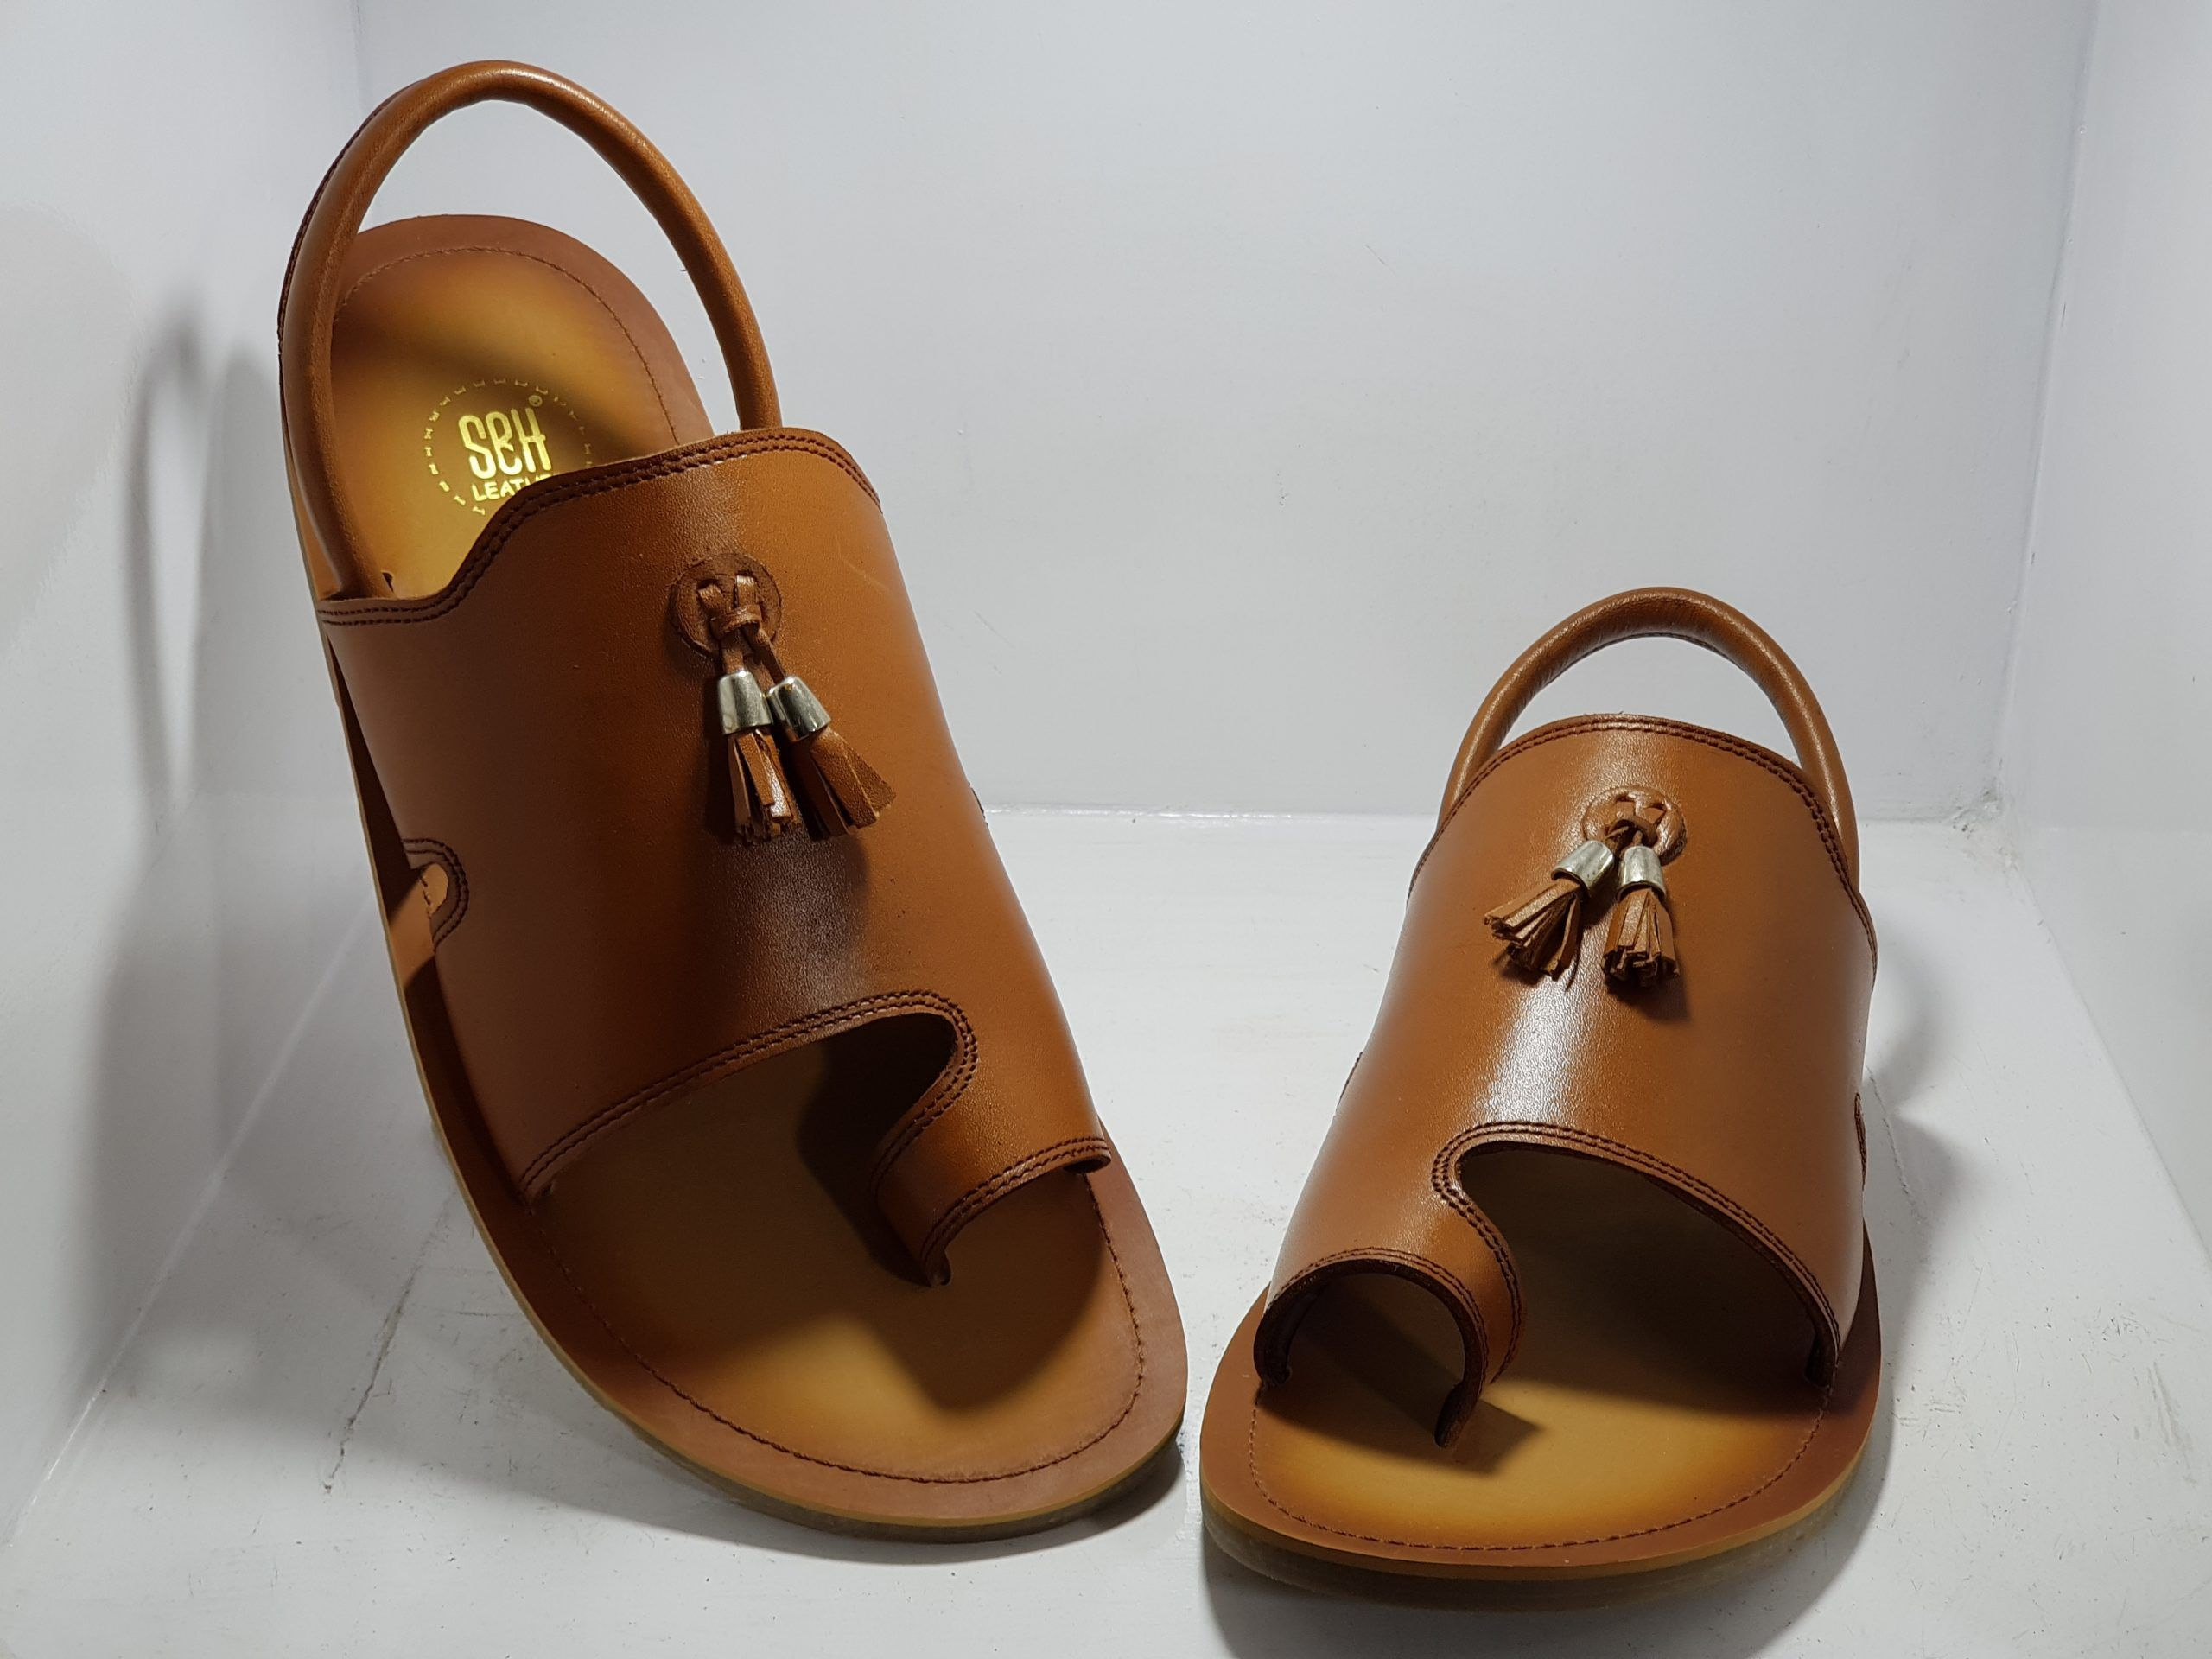 Pin On Shoes Bags